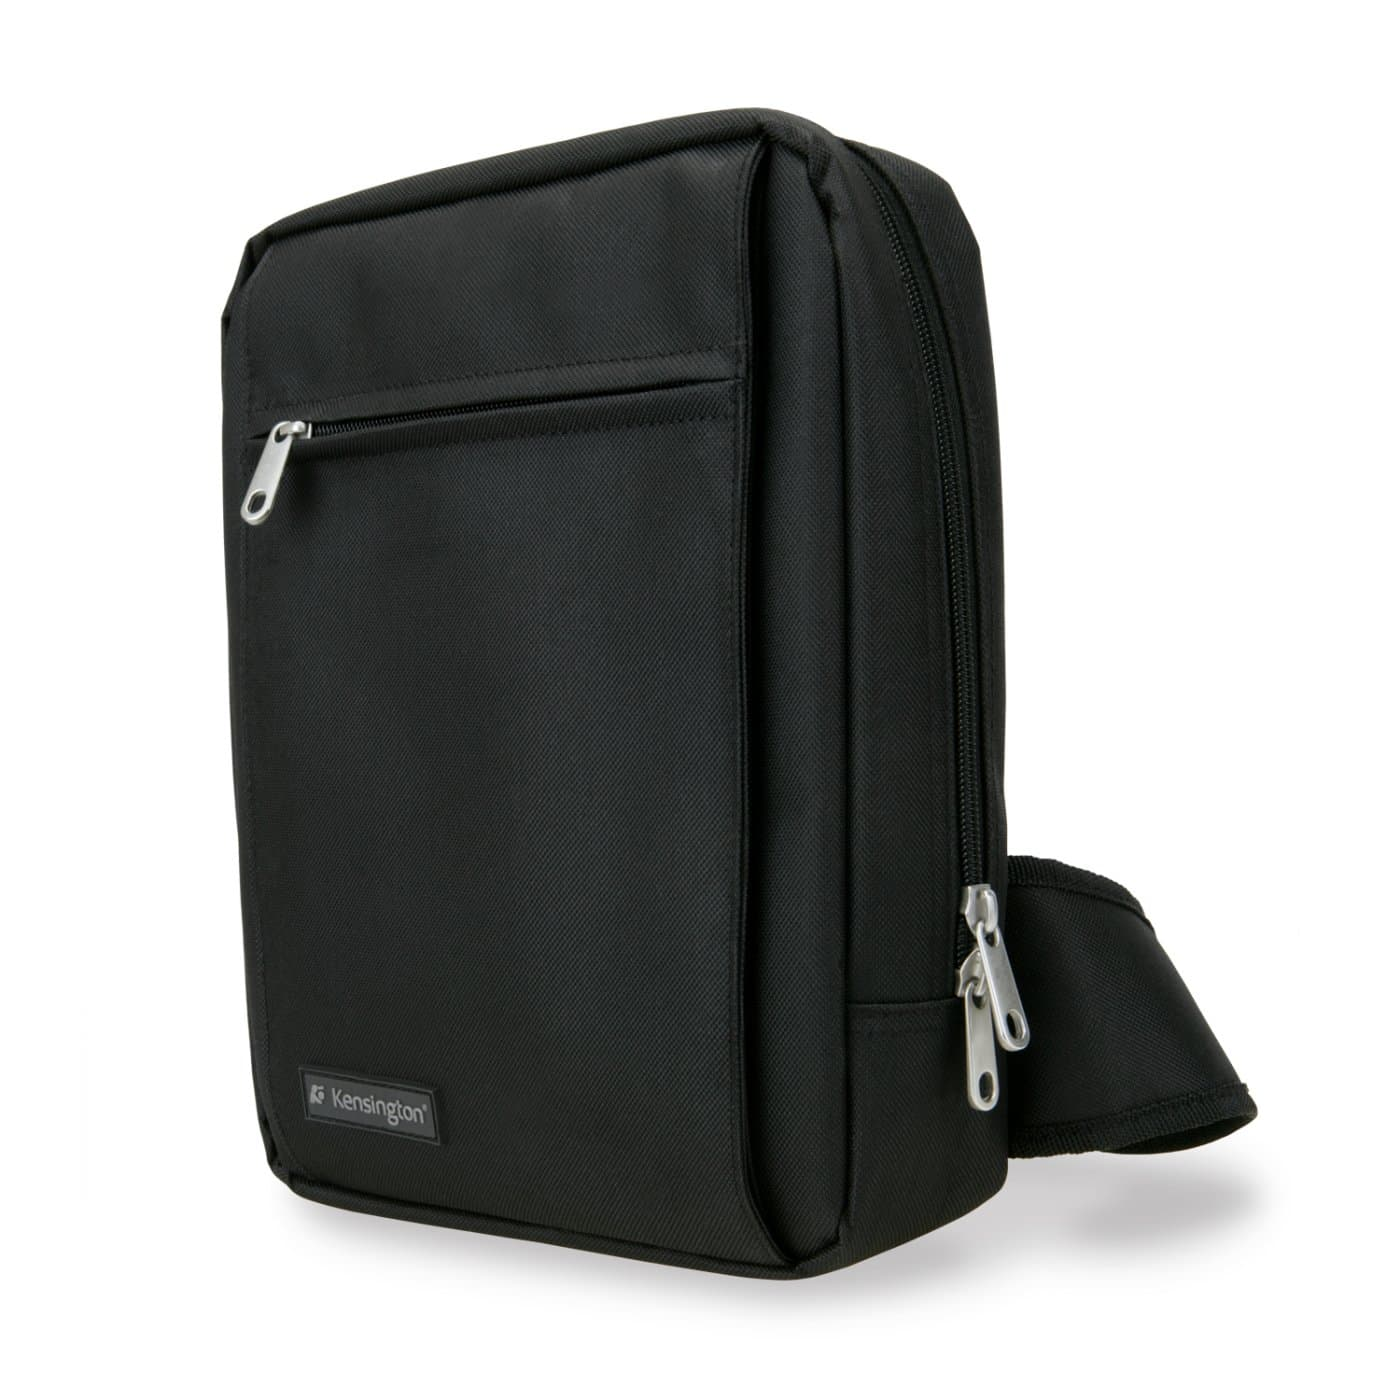 Kensington - Products - Laptop Bags - Backpacks - Sling 10.2 ...